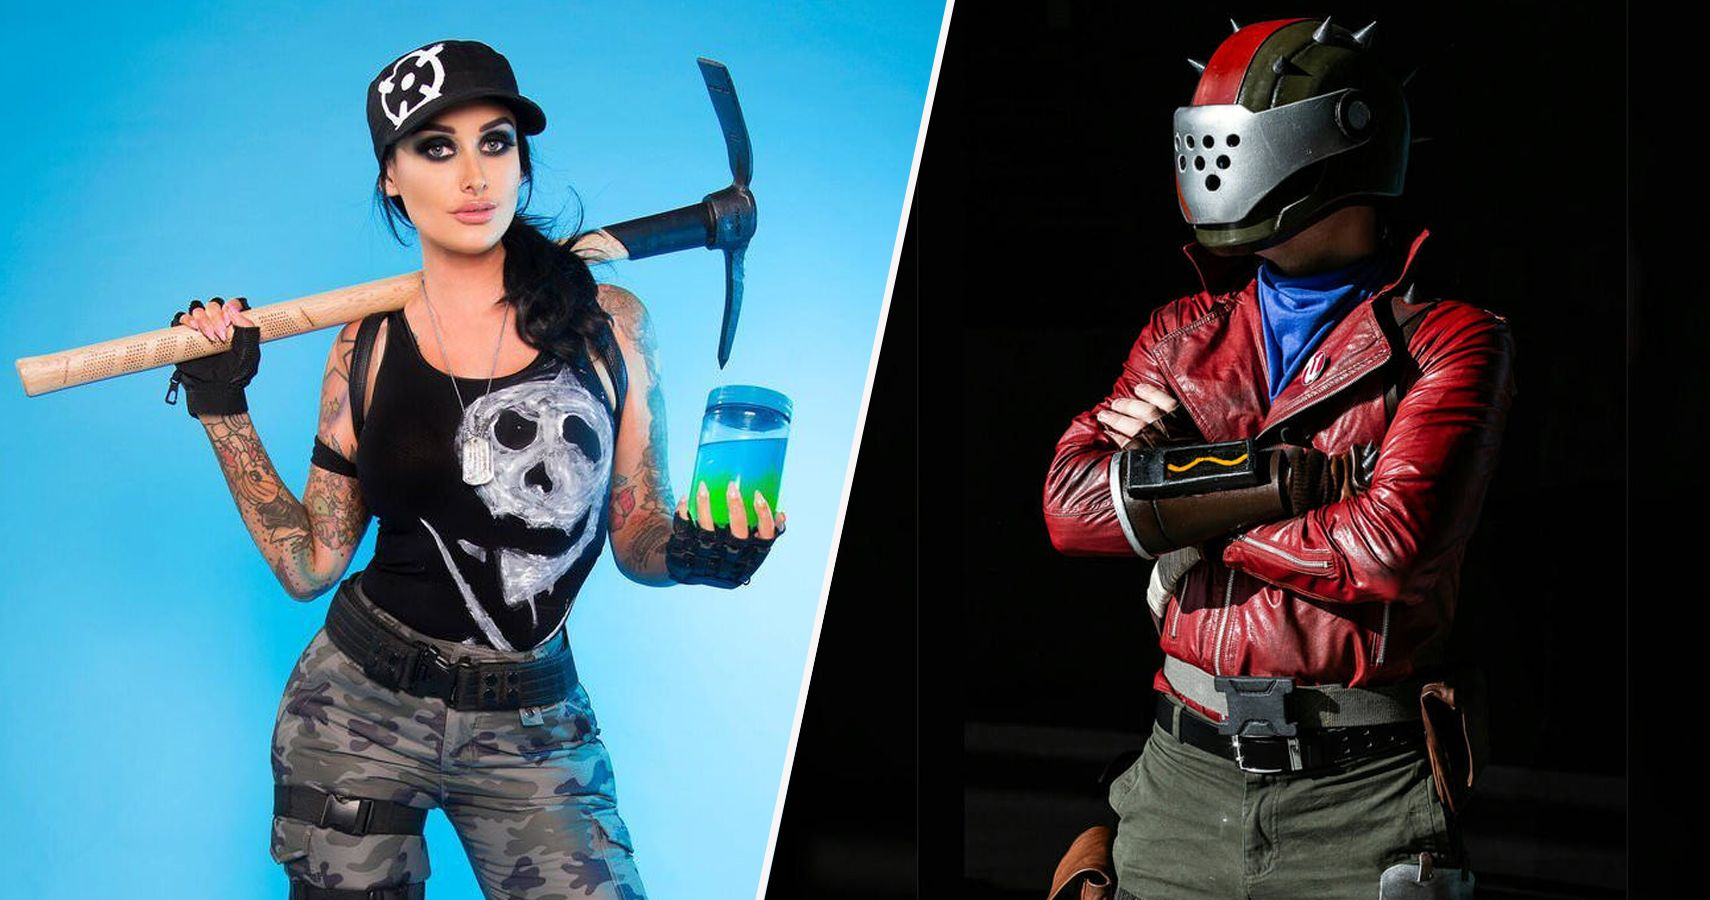 330b15212f0d0b 28 Awesome Fortnite Cosplay That Are Better Than The Game